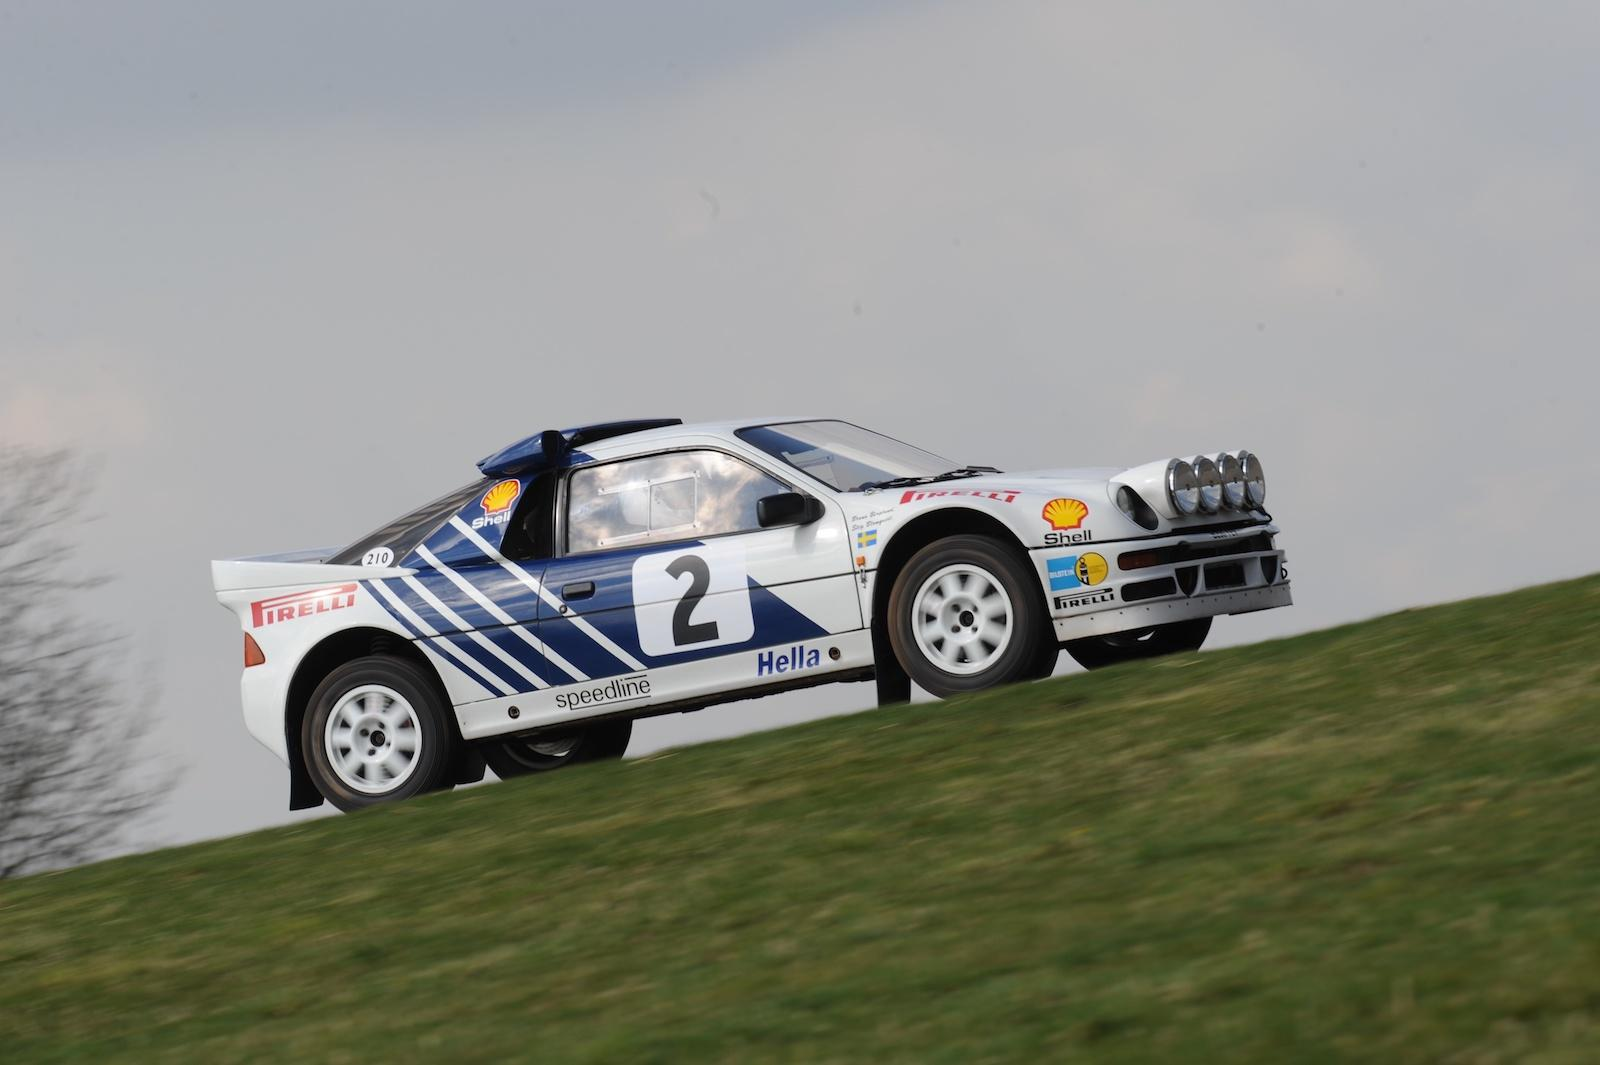 Group B, F1 and Battle of Britain to star at Donington